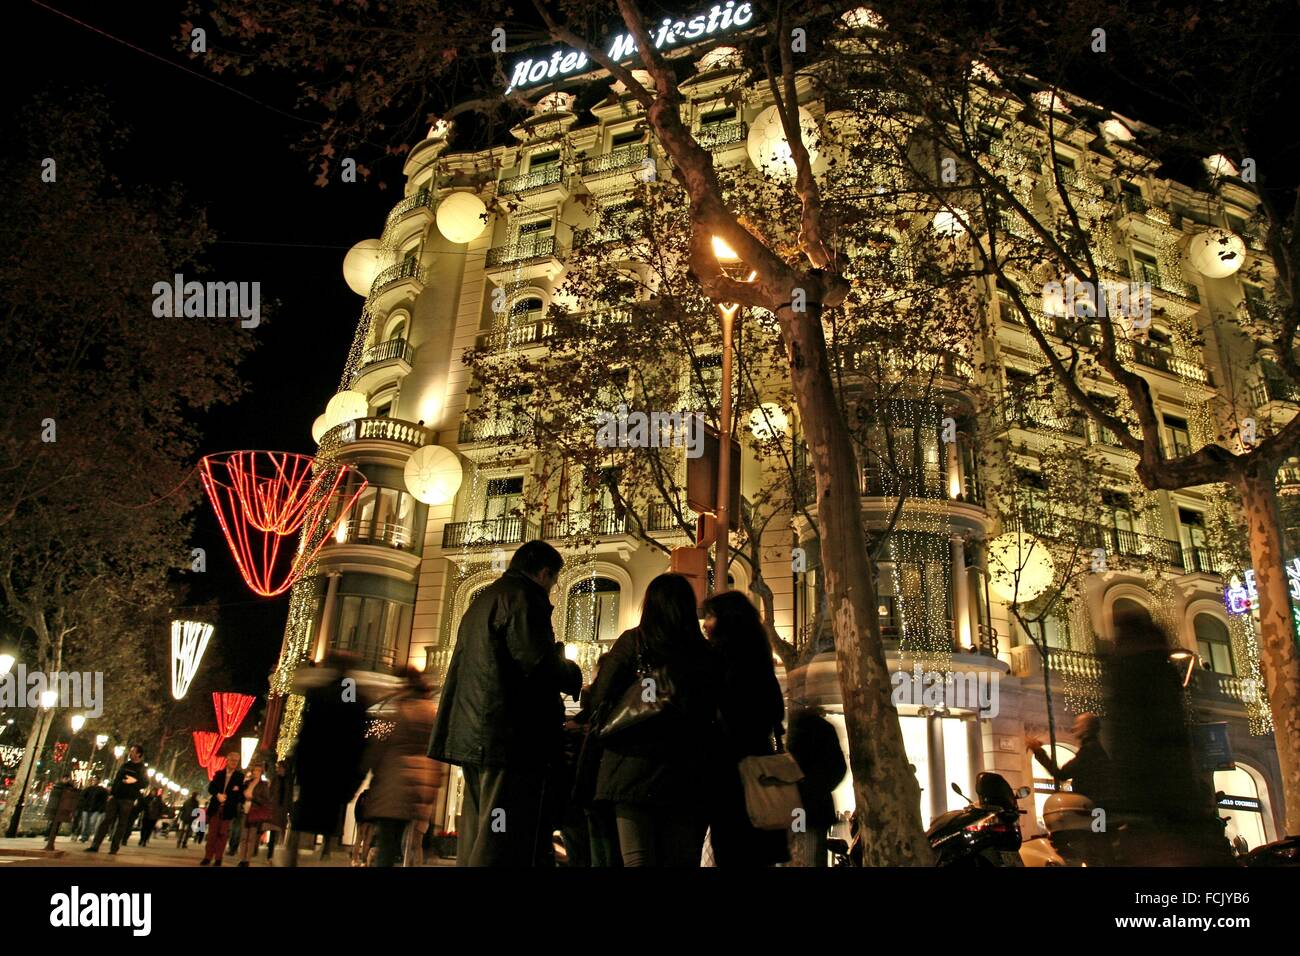 Majestic Christmas.Hotel Majestic Christmas Lights Passeig De Gracia